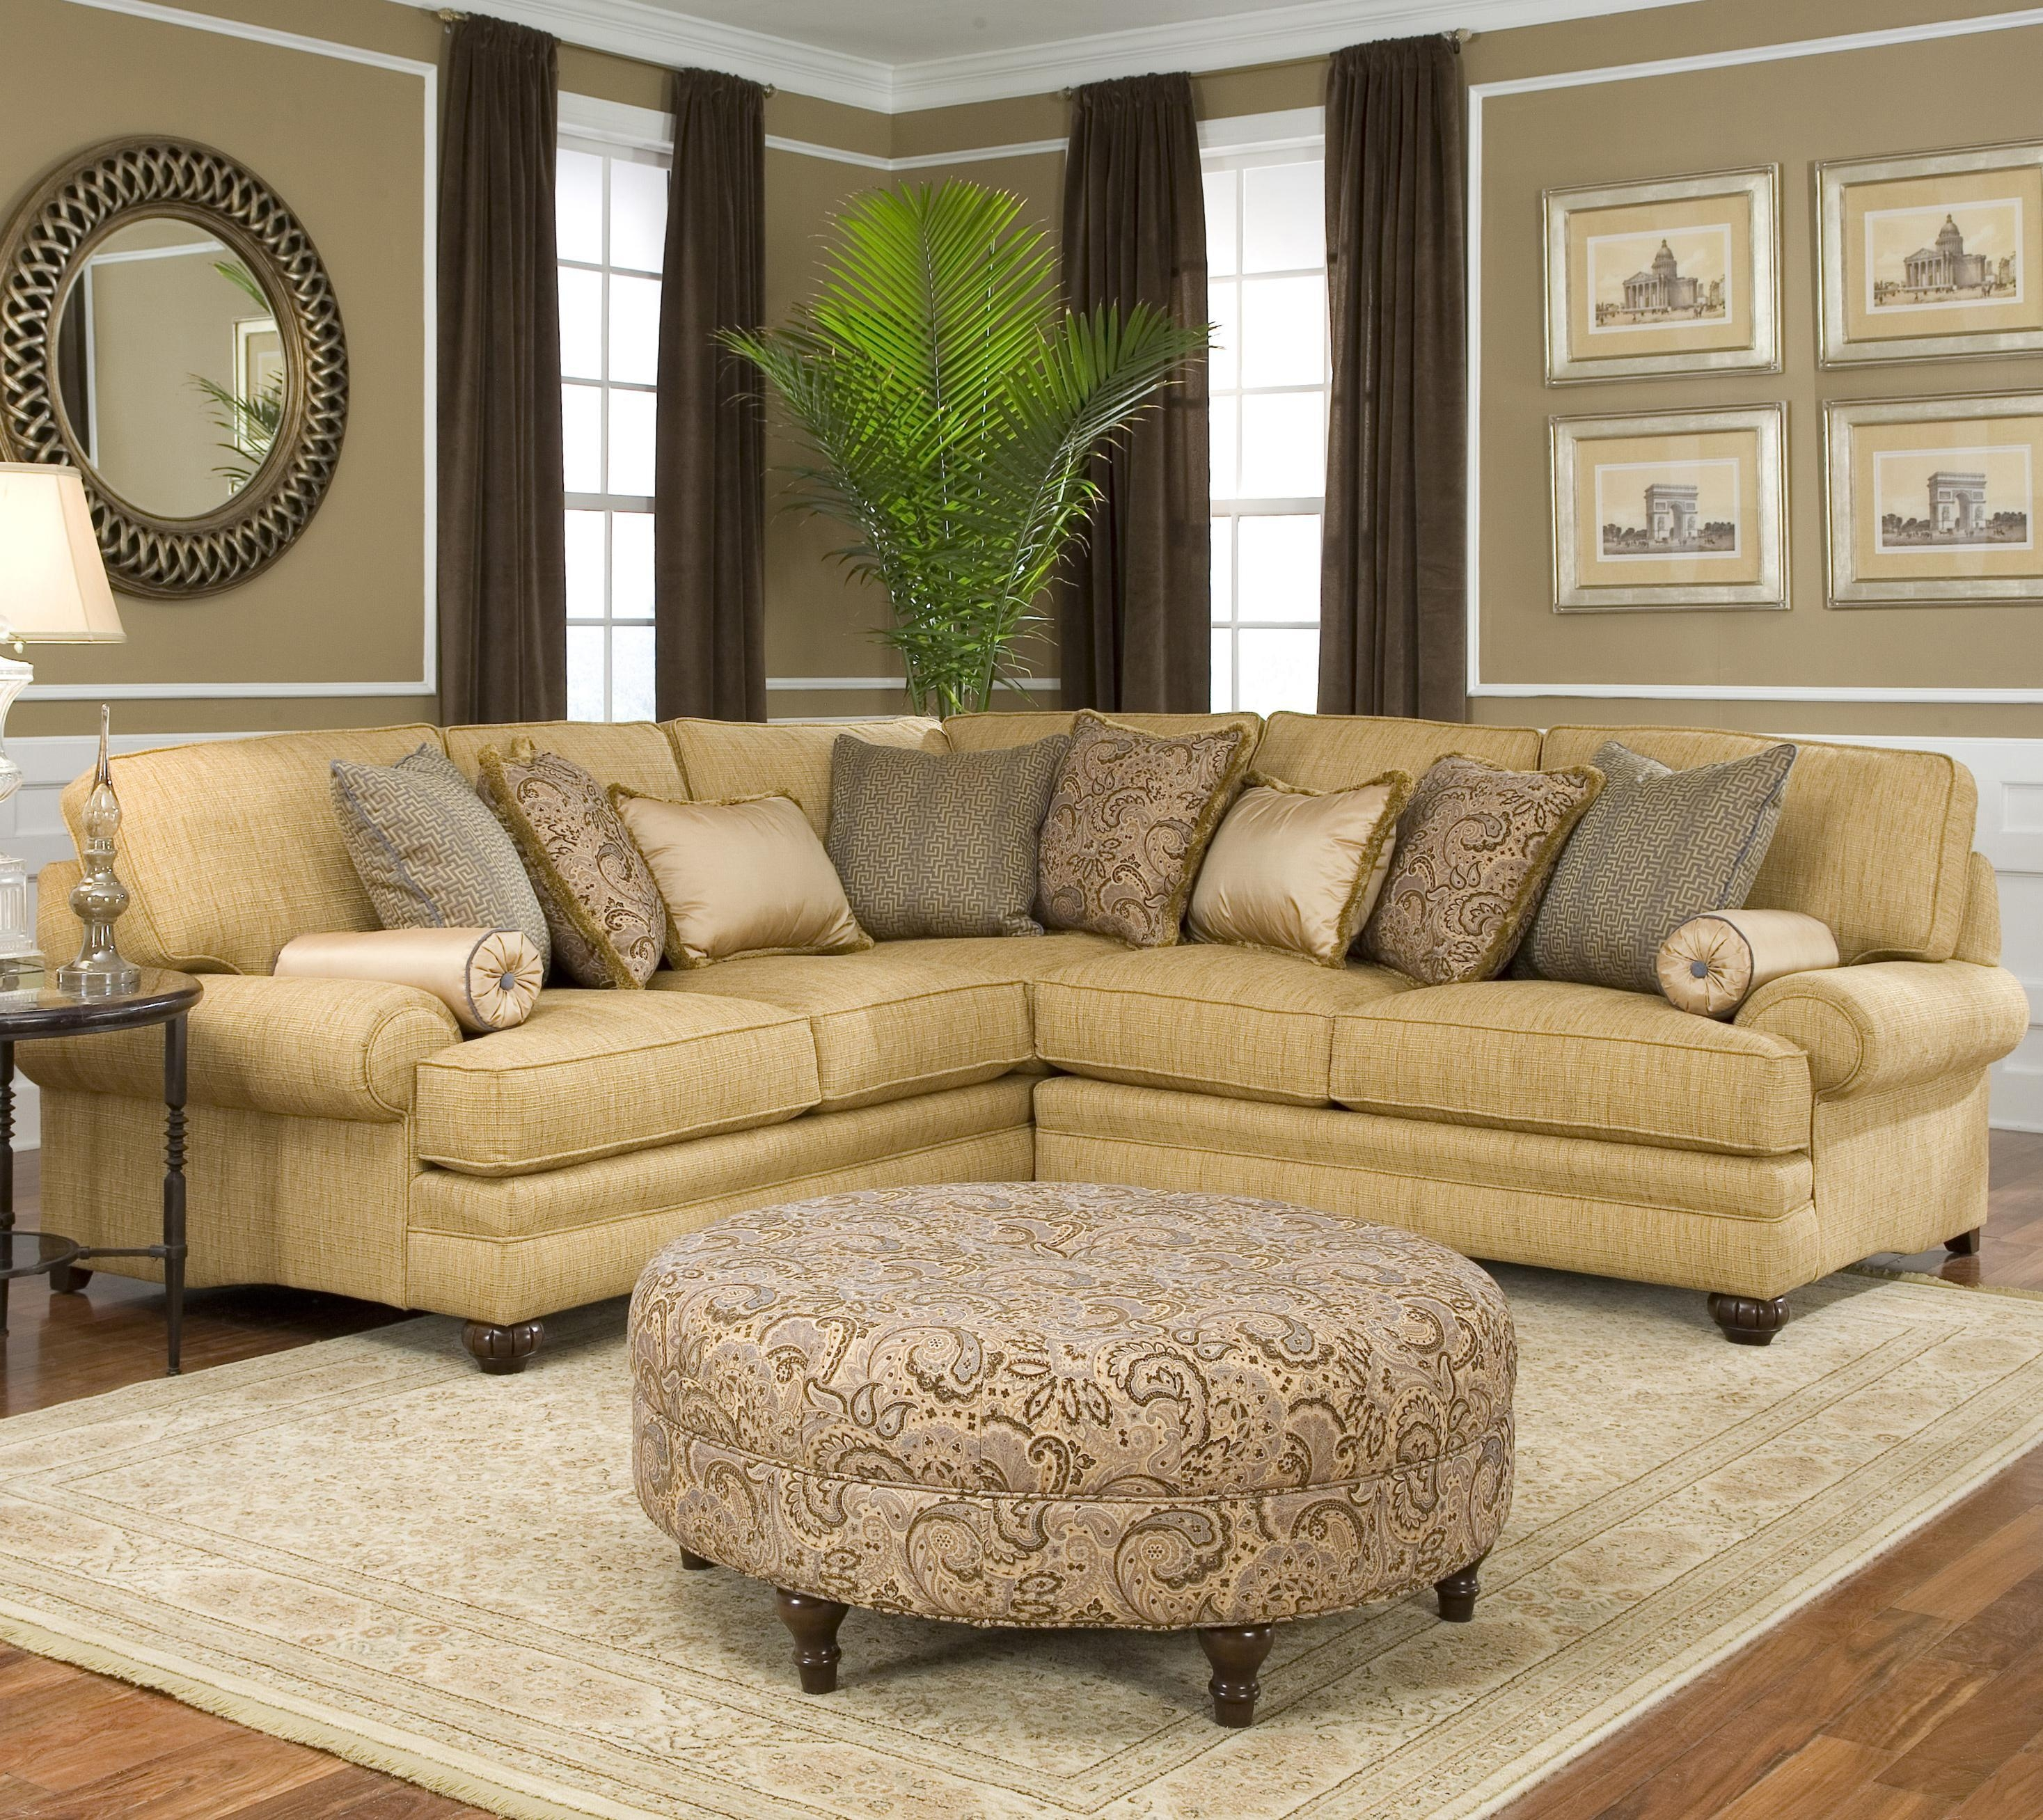 Traditional sectional sofa excellent living room for Traditional sectional